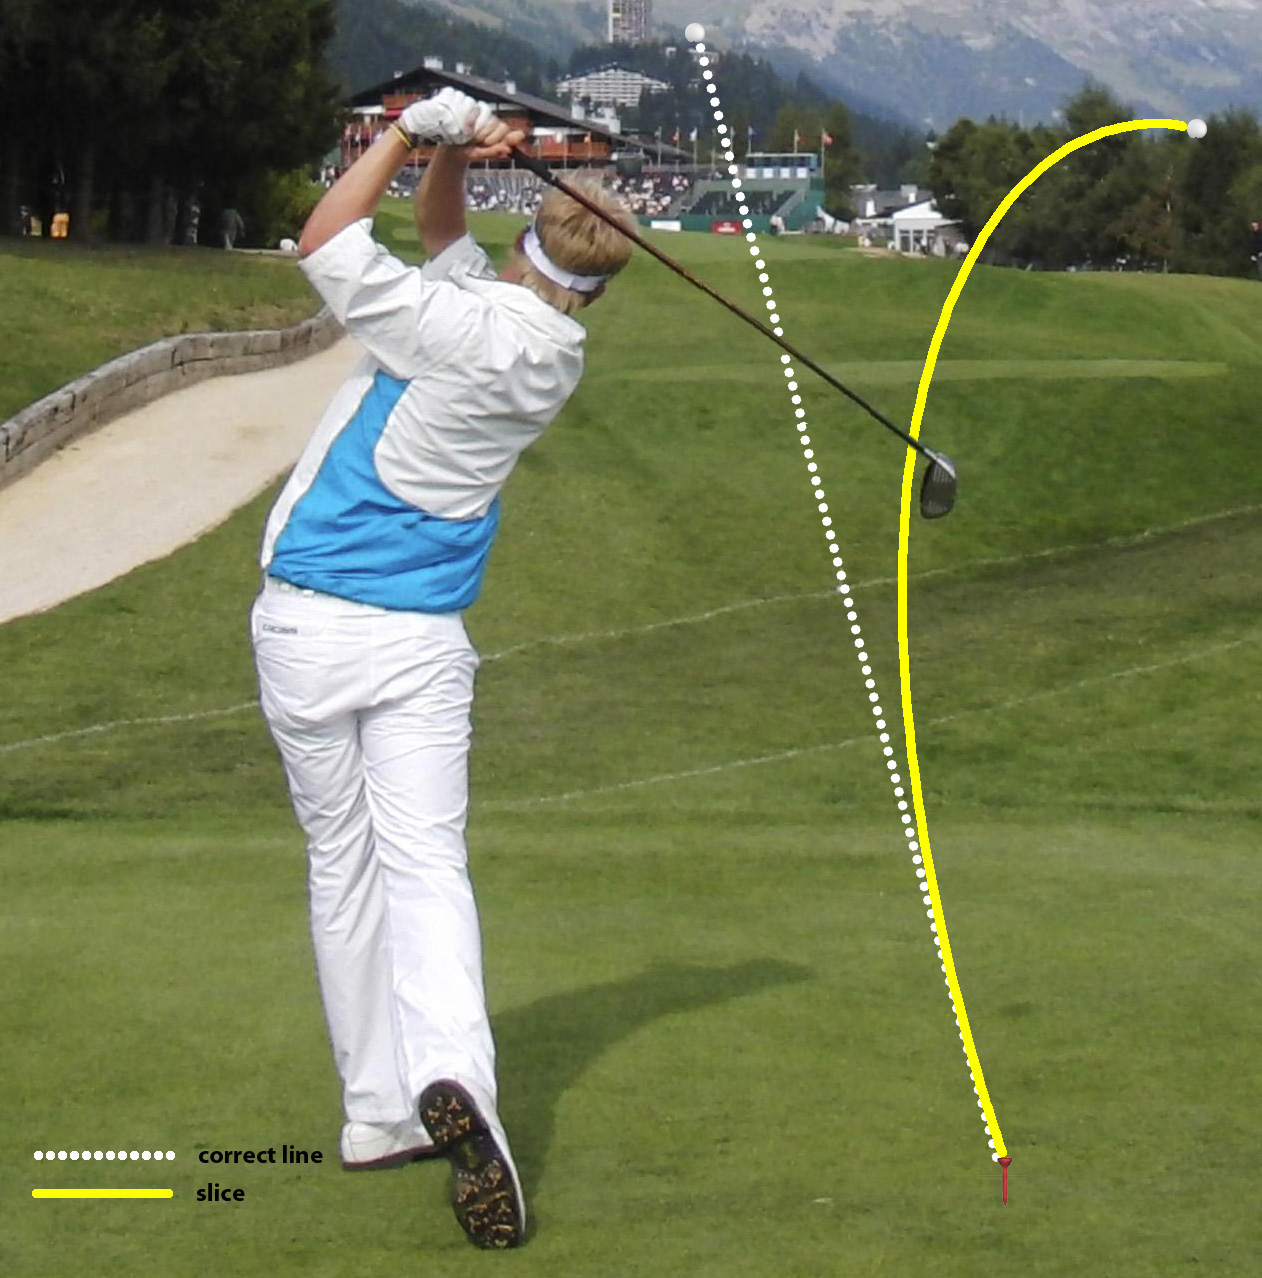 Fig.1 - Getting rid of the dreaded slice shot just takes a few quick fixes in set up and practice